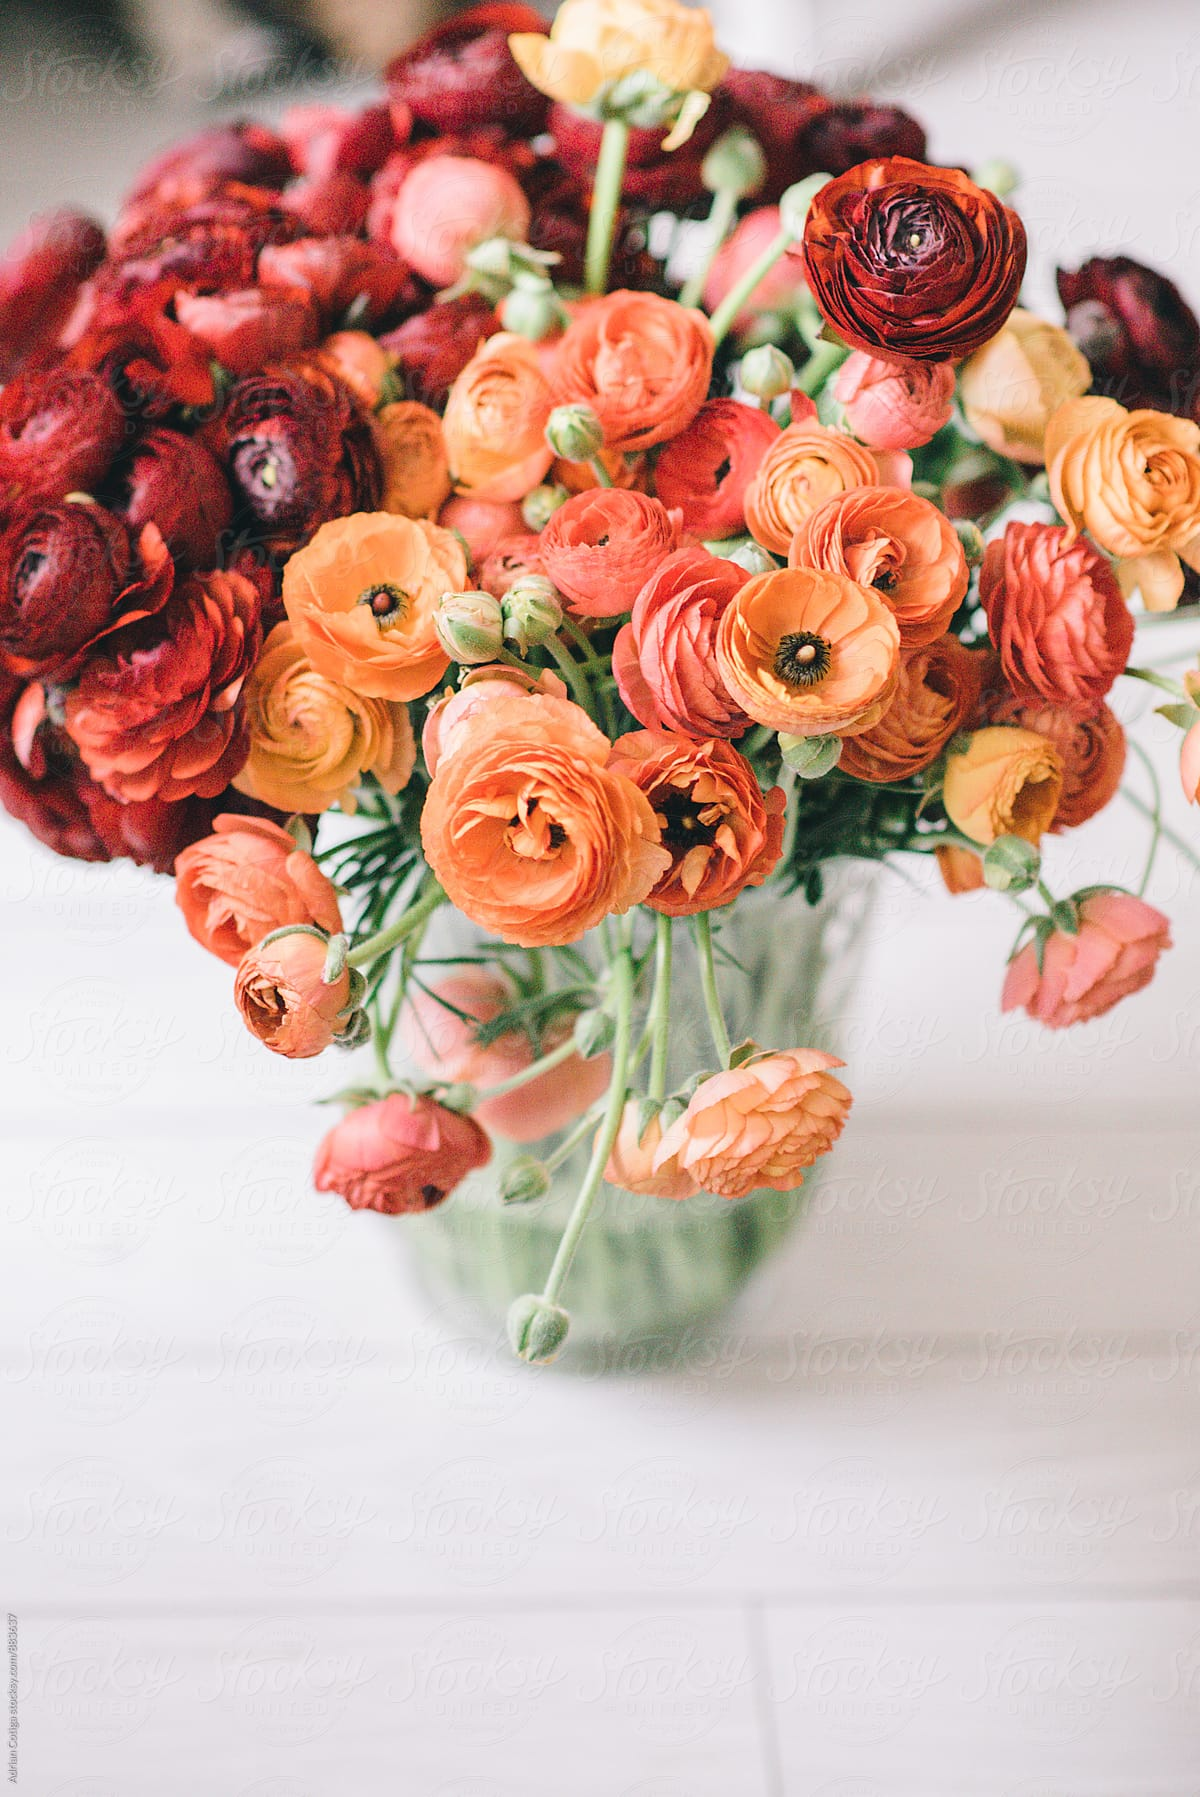 Spring Flowers Bouquet With Orange And Red Ranunculus Stocksy United